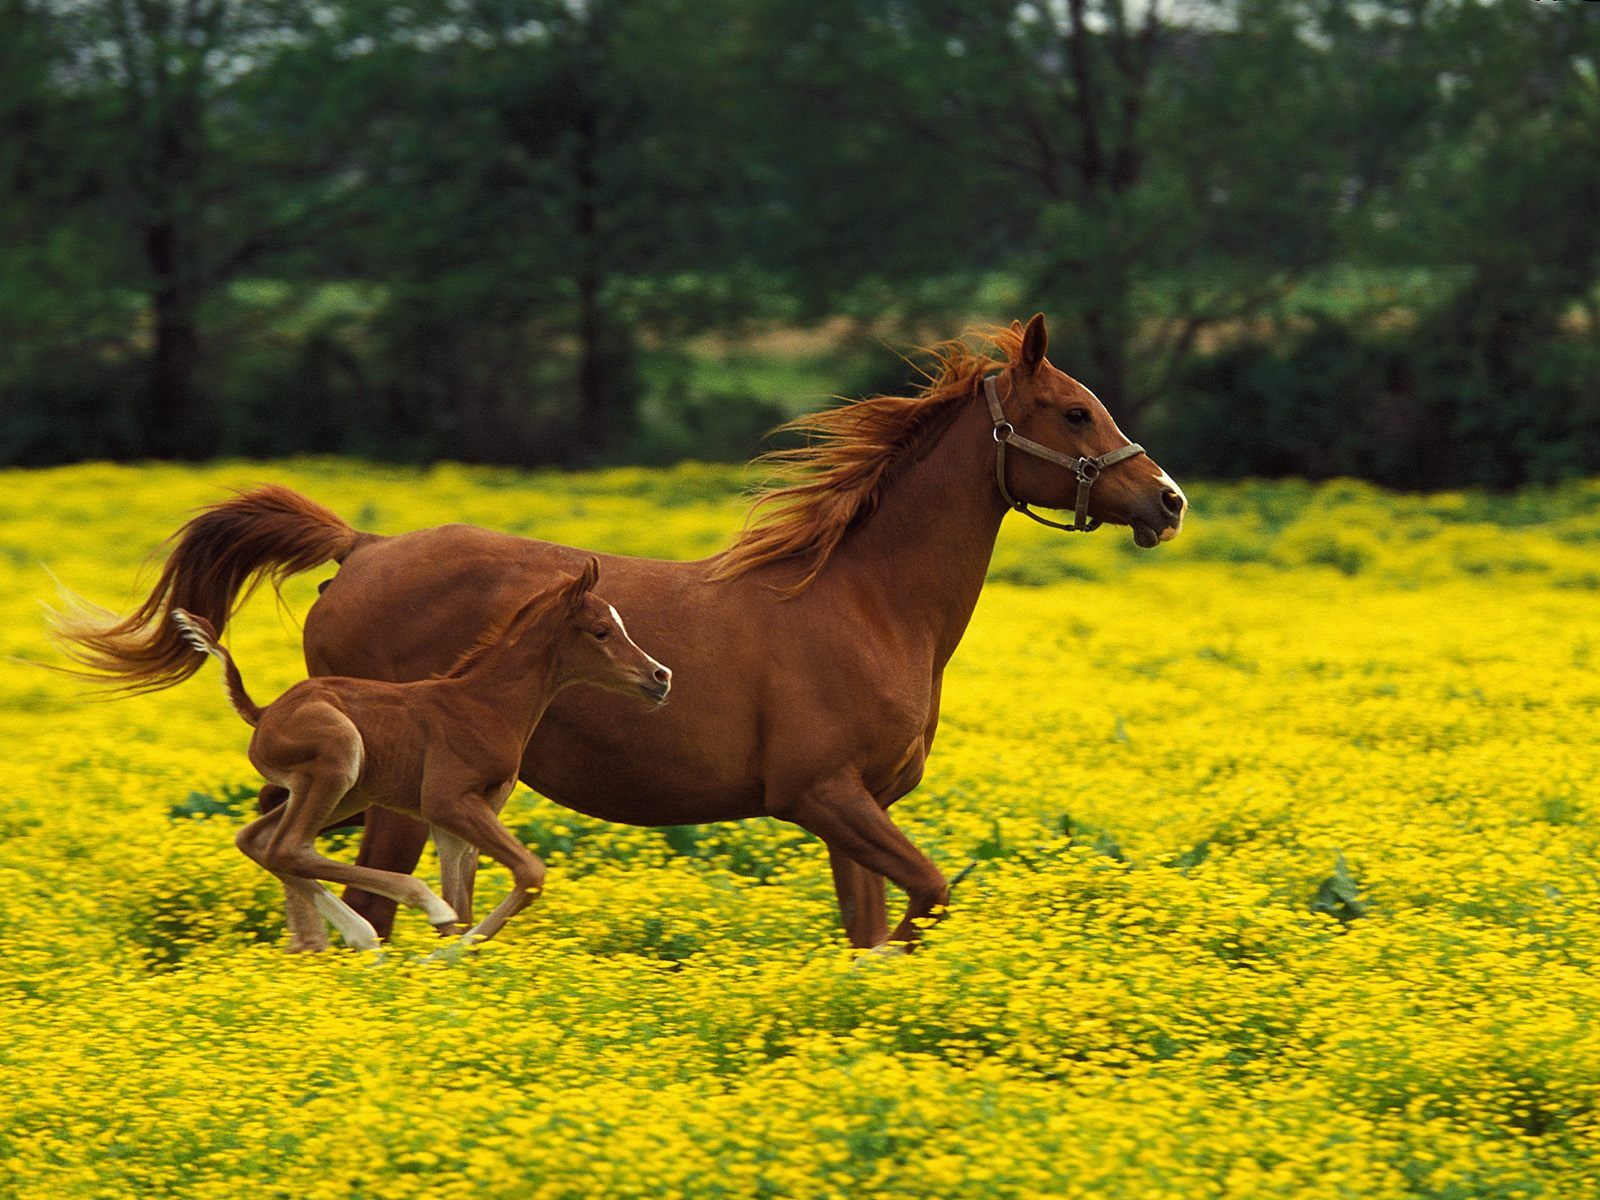 Horse Wallpapers Beautiful horse pictures, Baby horses